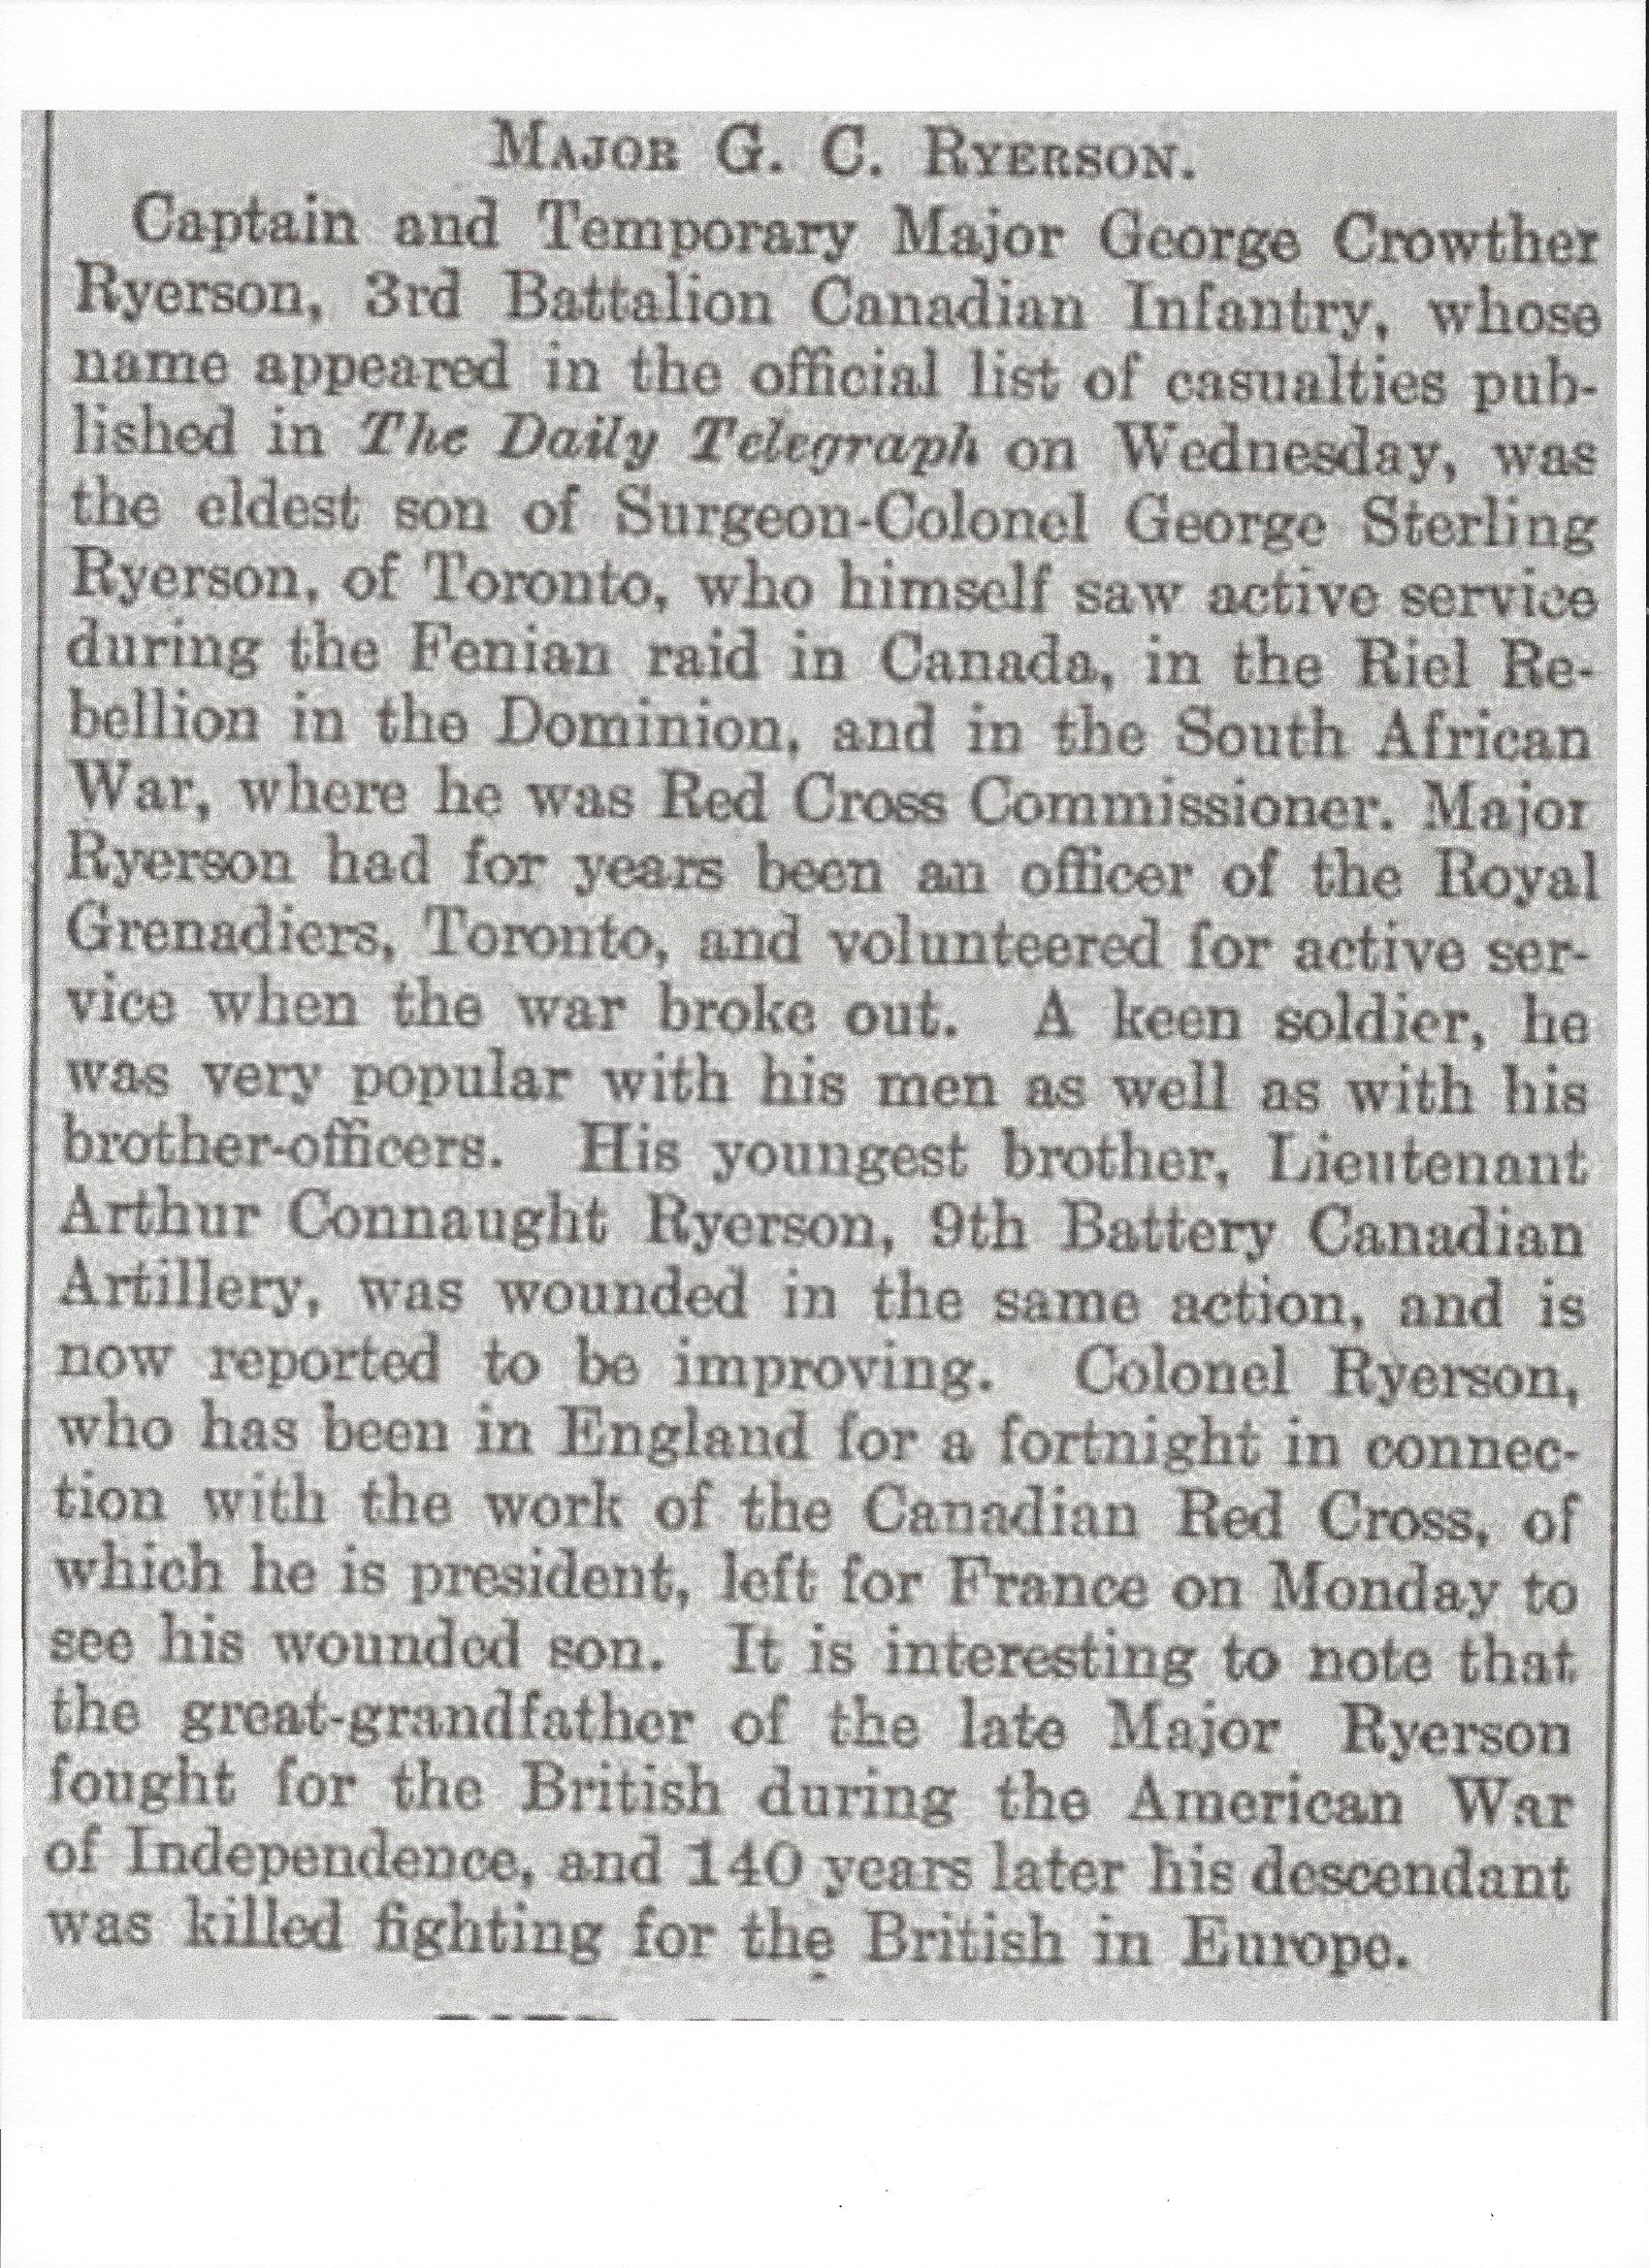 Newspaper Clipping – Newspaper clipping from Daily Telegraph of April 30, 1915. Image taken from web address of http://www.telegraph.co.uk/news/ww1-archive/11561799/Daily-Telegraph-April-30-1915.html